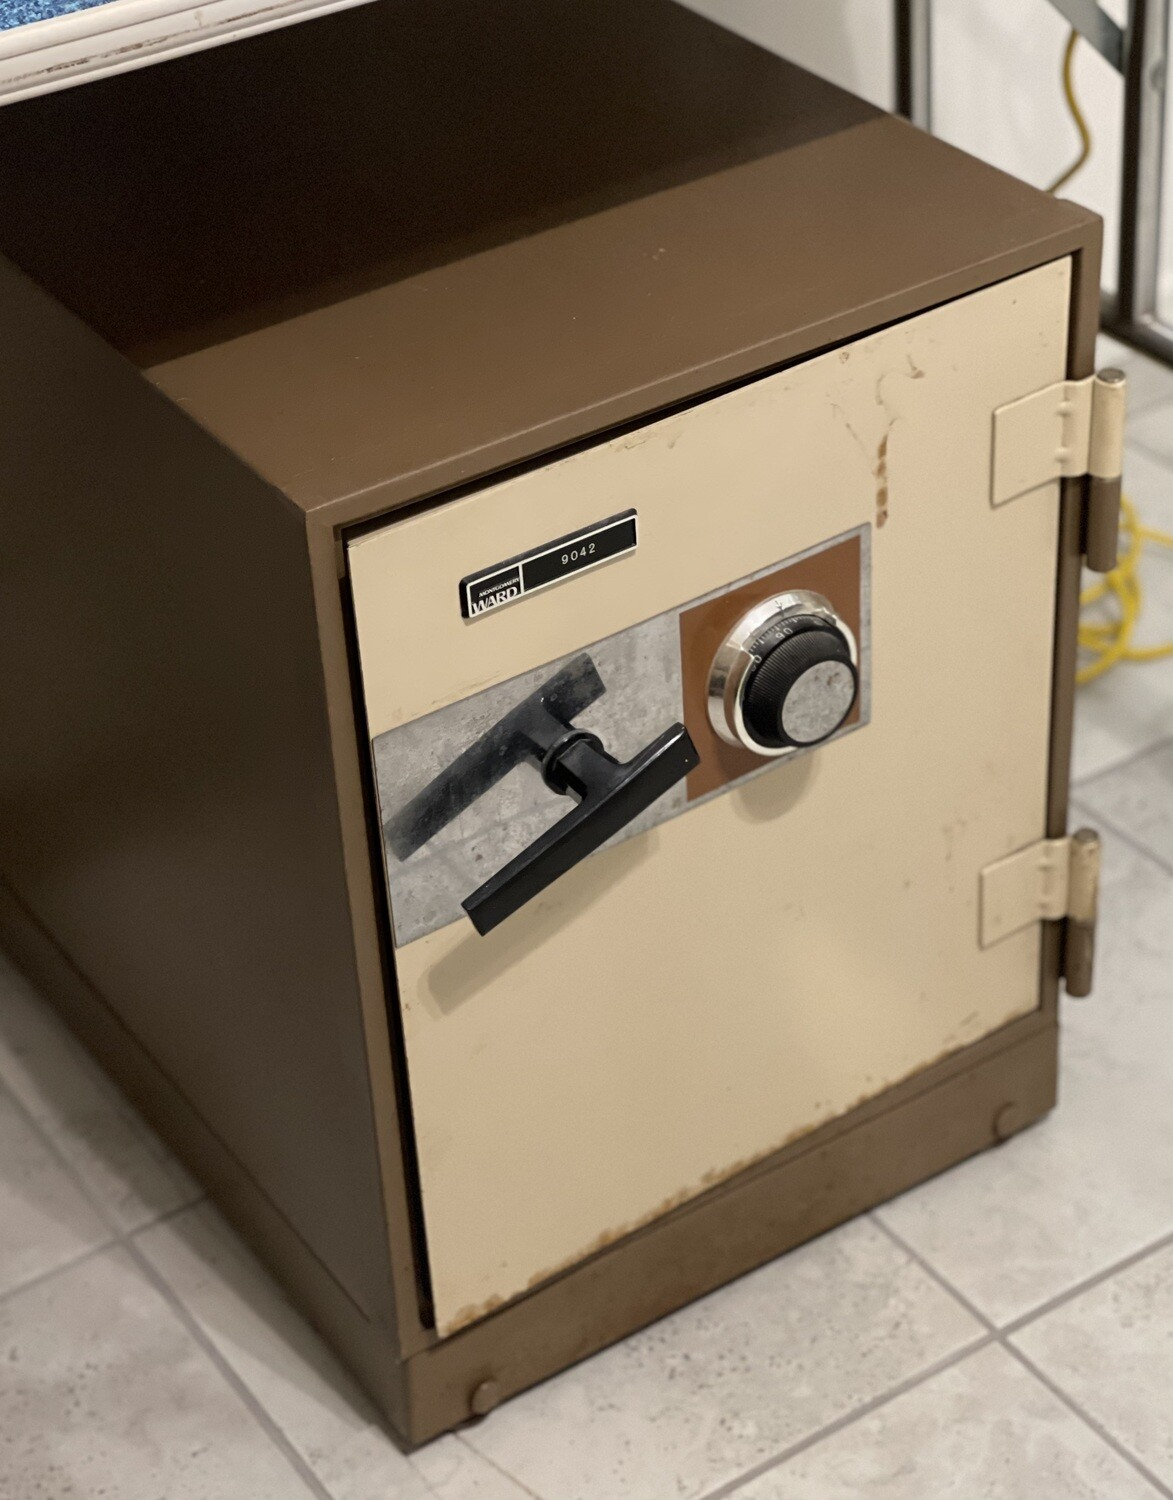 Montgomery Ward 9042 Safe